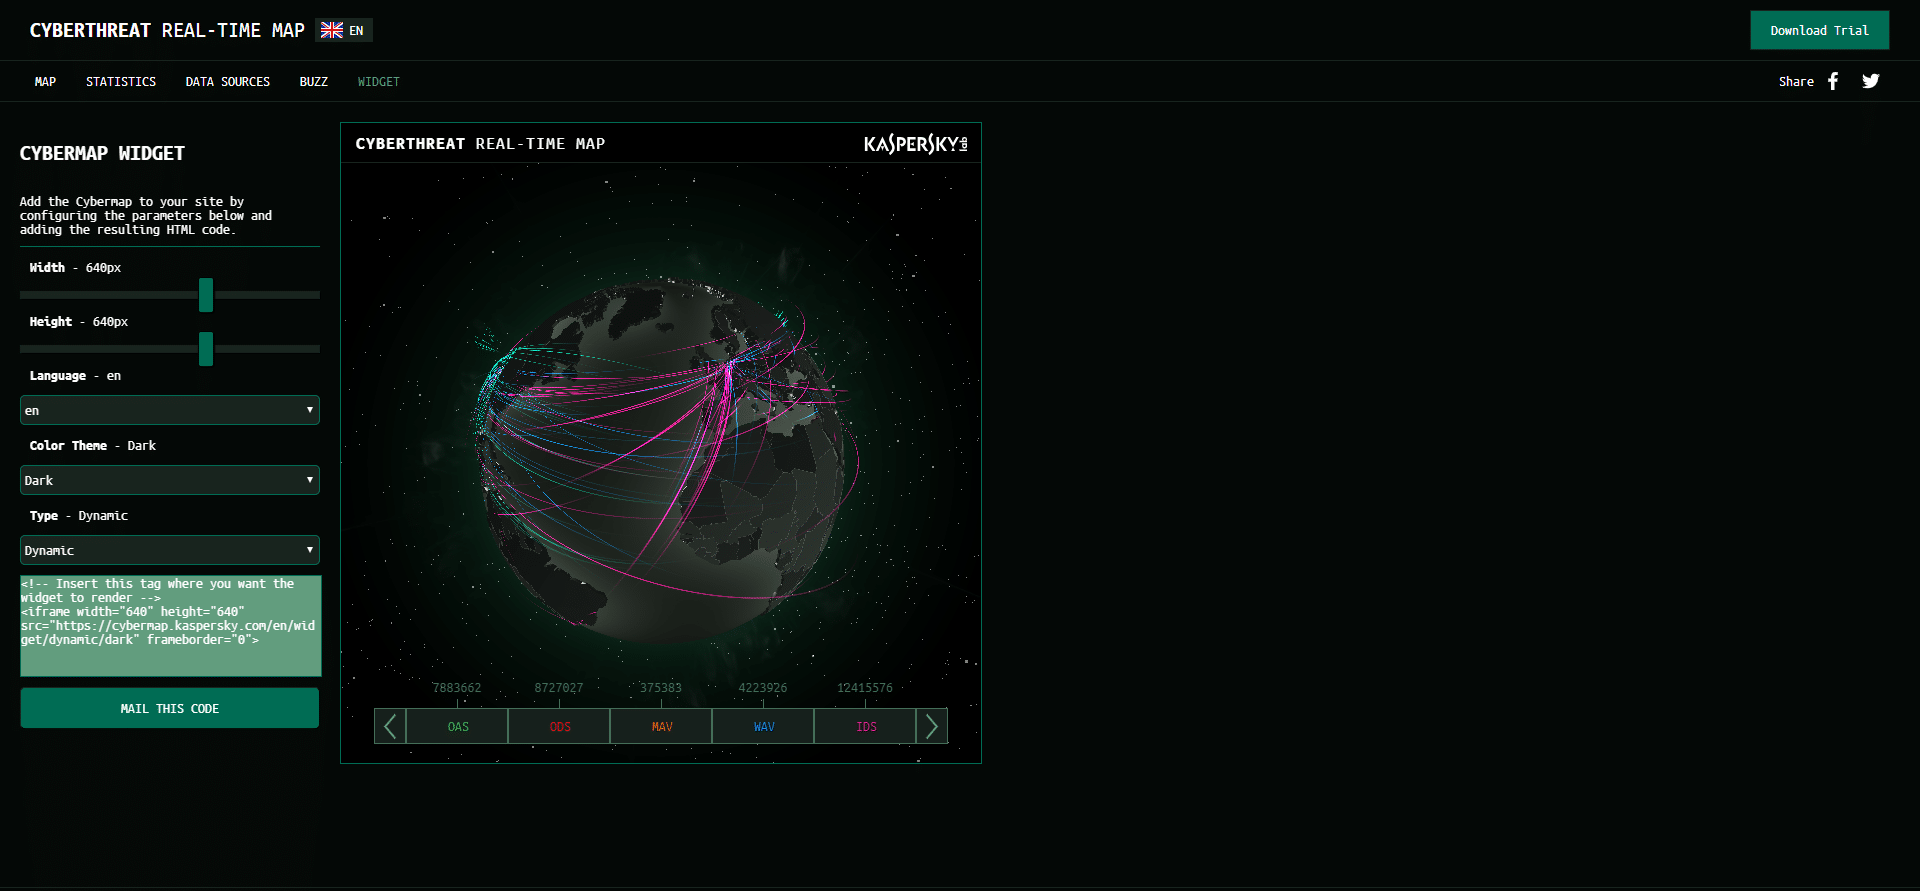 Cyber Attack Map by Kaspersky